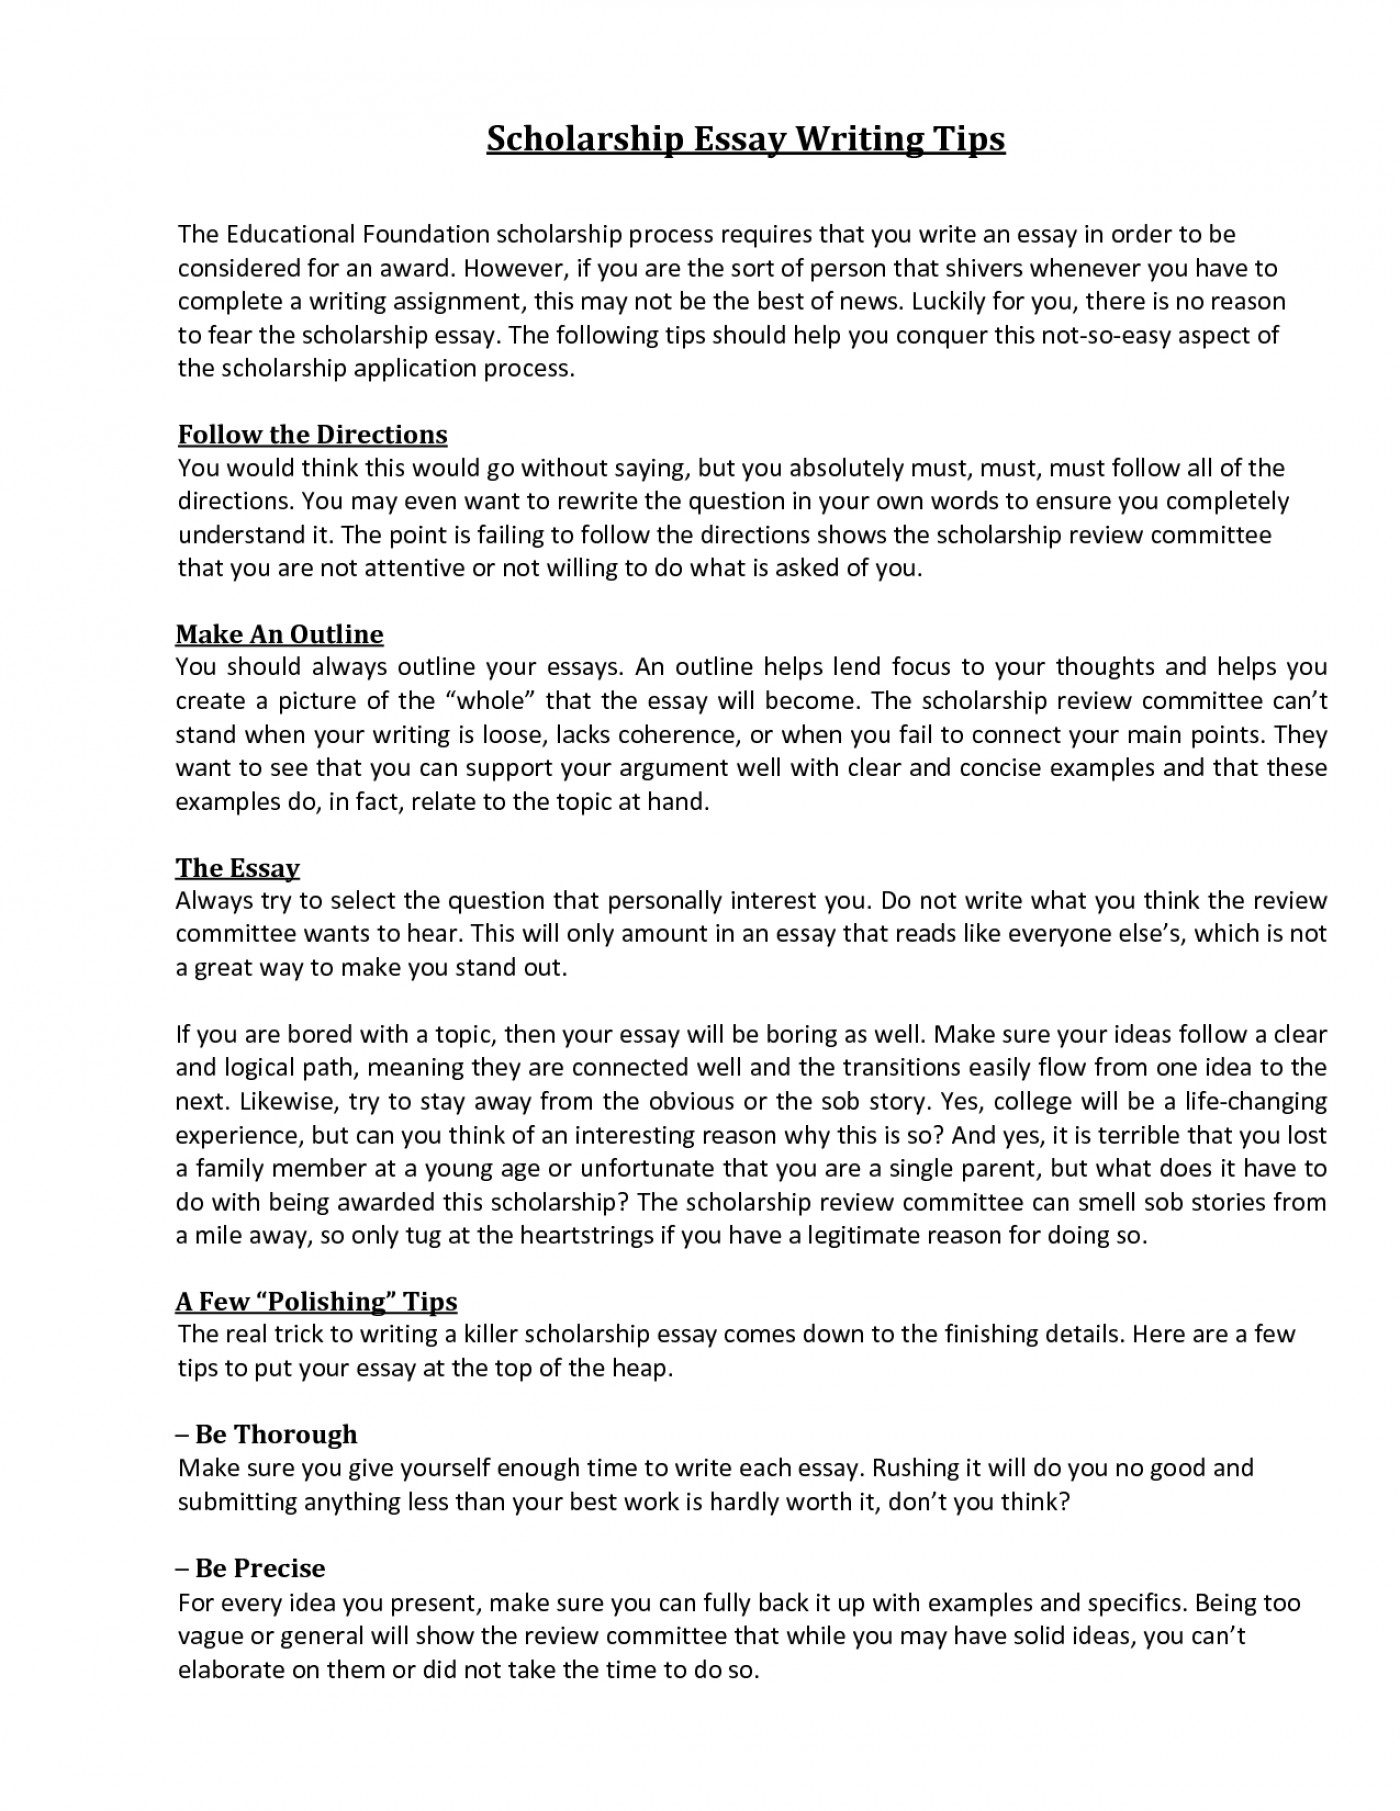 001 What To Write For Scholarship Essay Example Awesome A How Introduction That Stands Out About Your Career Goals 1400